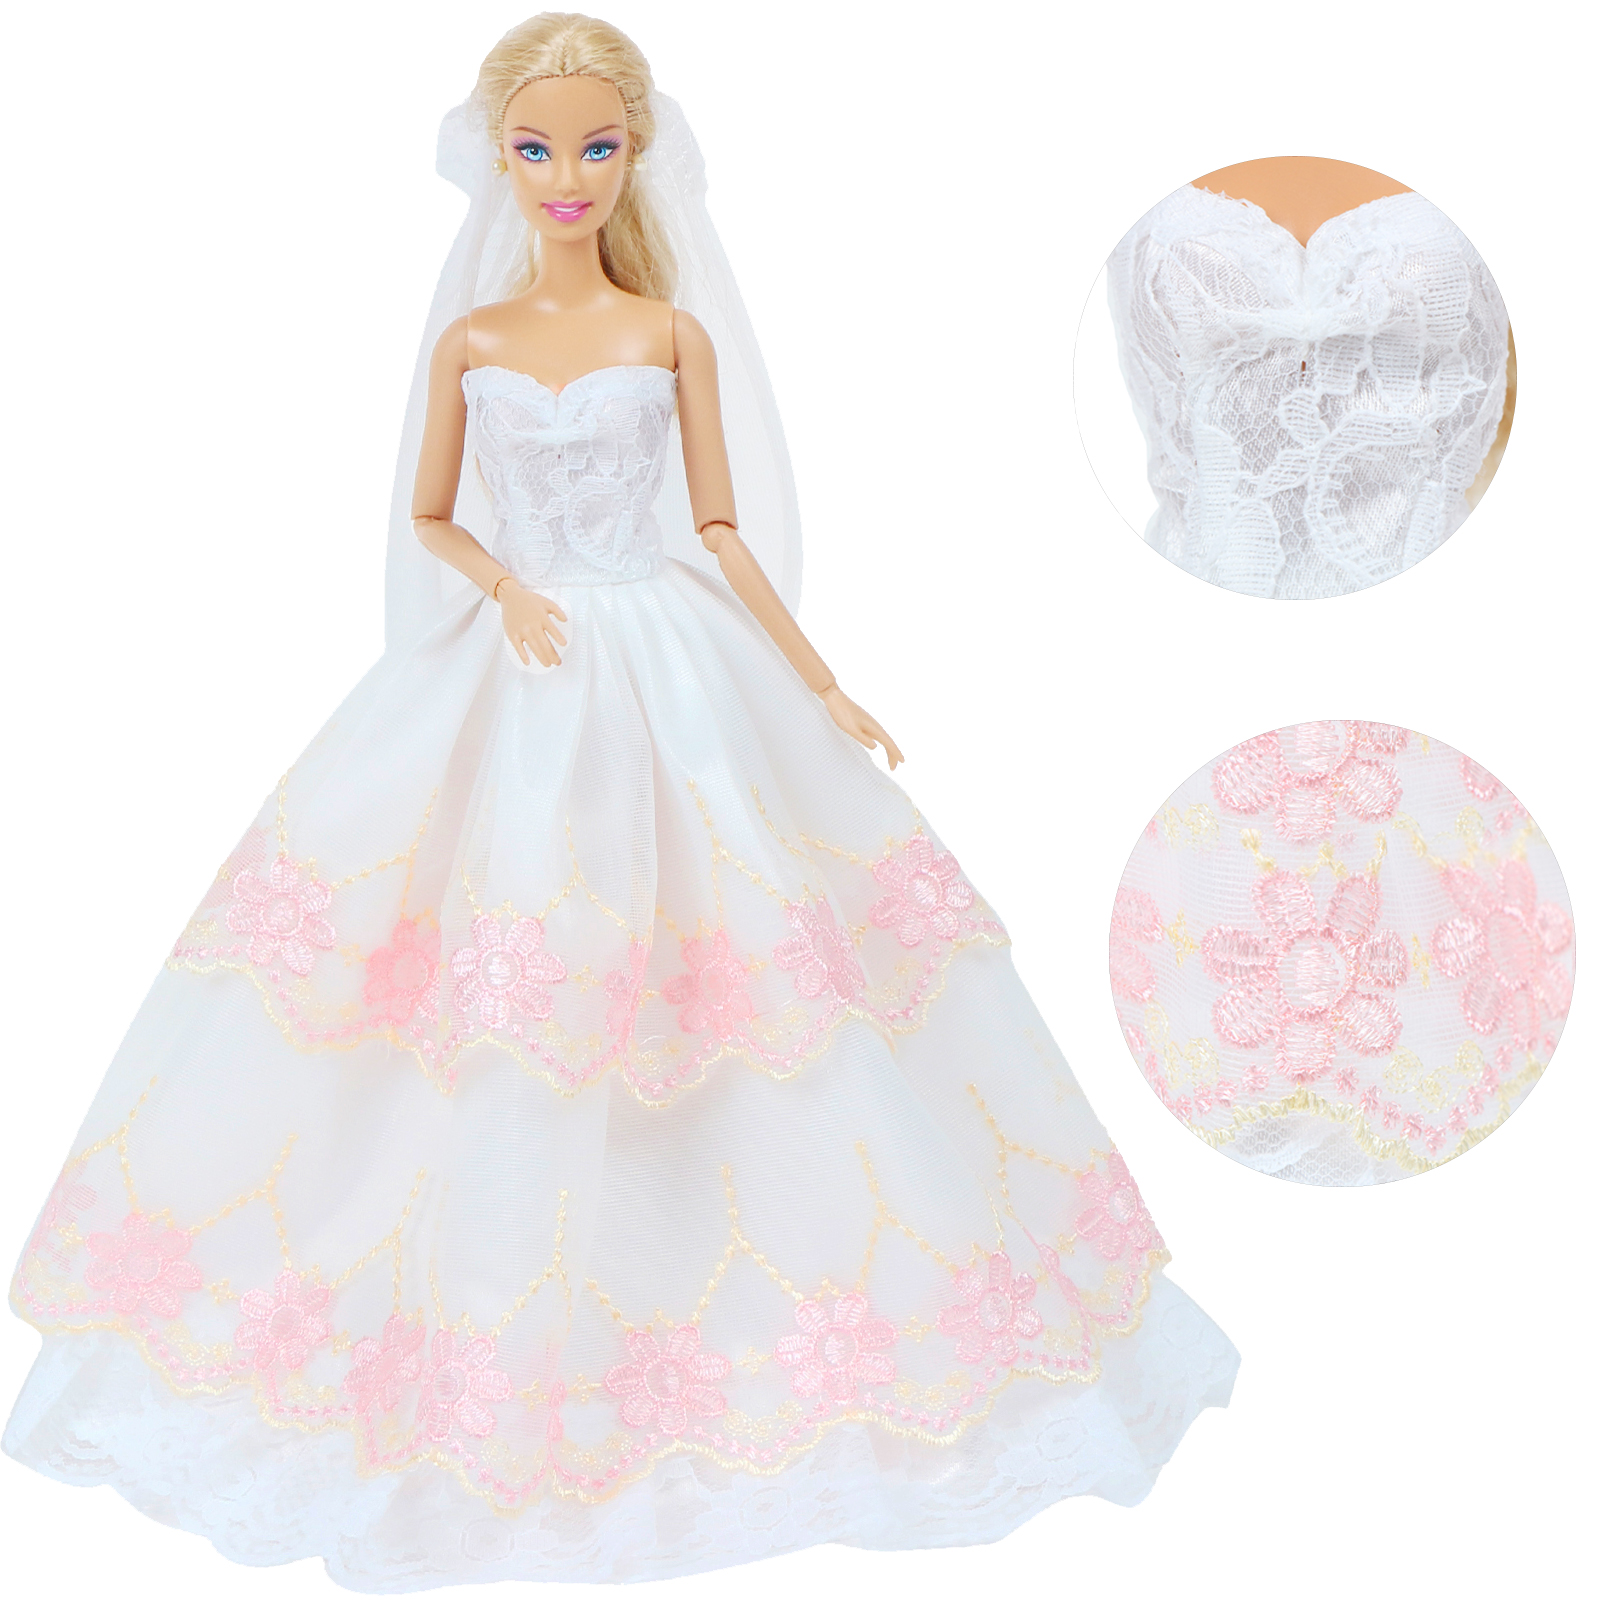 Handmade Fashion Doll Dress Dancing Party Bride Wear White Gown + Lace Veil Clothes For Barbie Doll Accessories Kid Toy